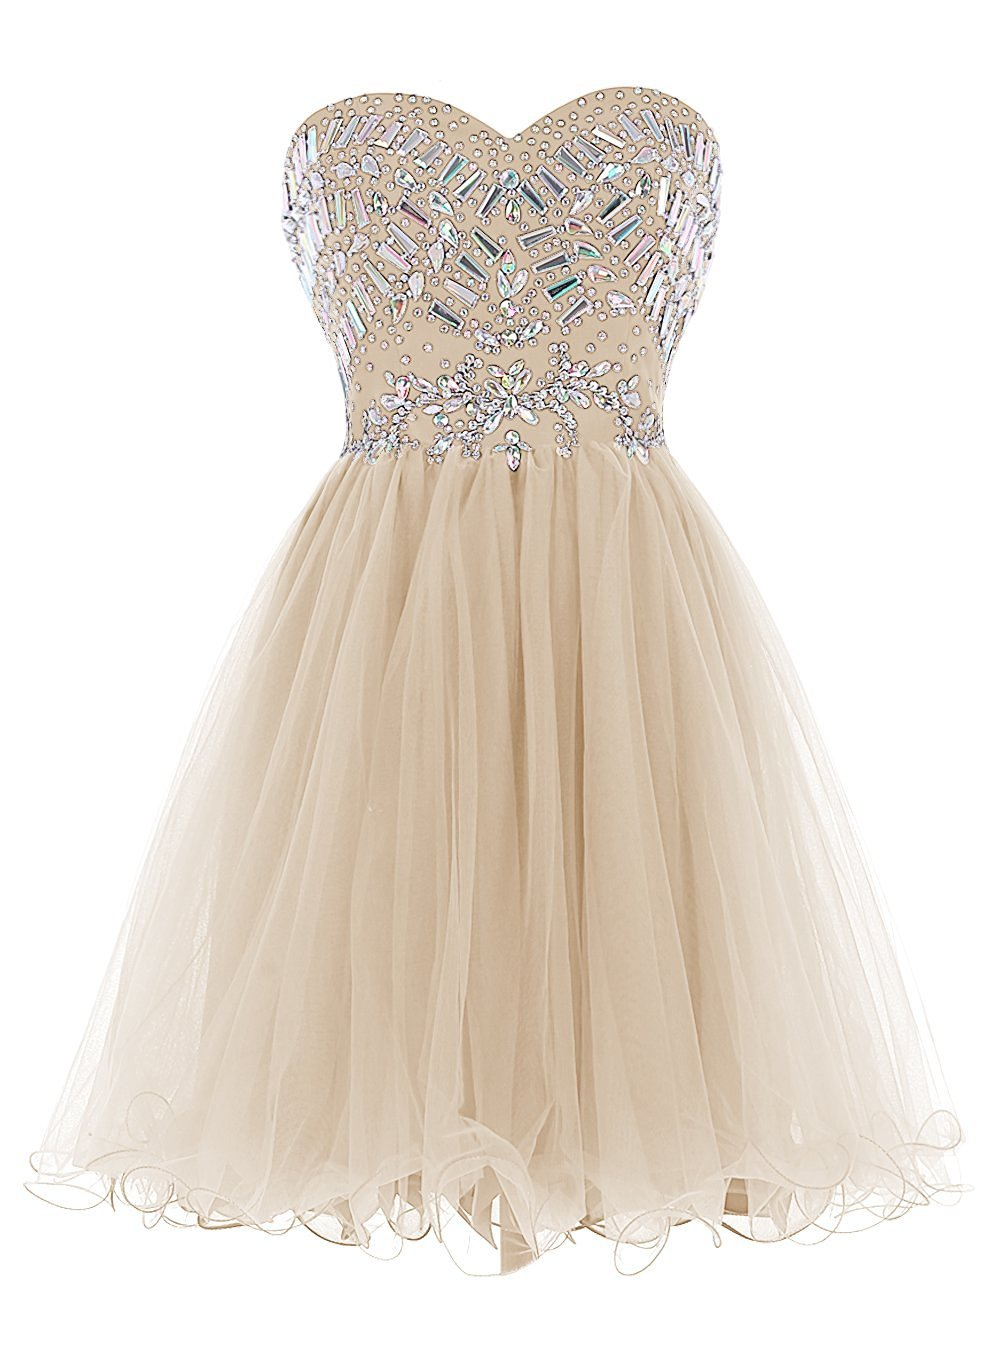 Women's Short Sweetheart Beaded Prom Dress Tulle Homecoming Dress Cocktail Gowns